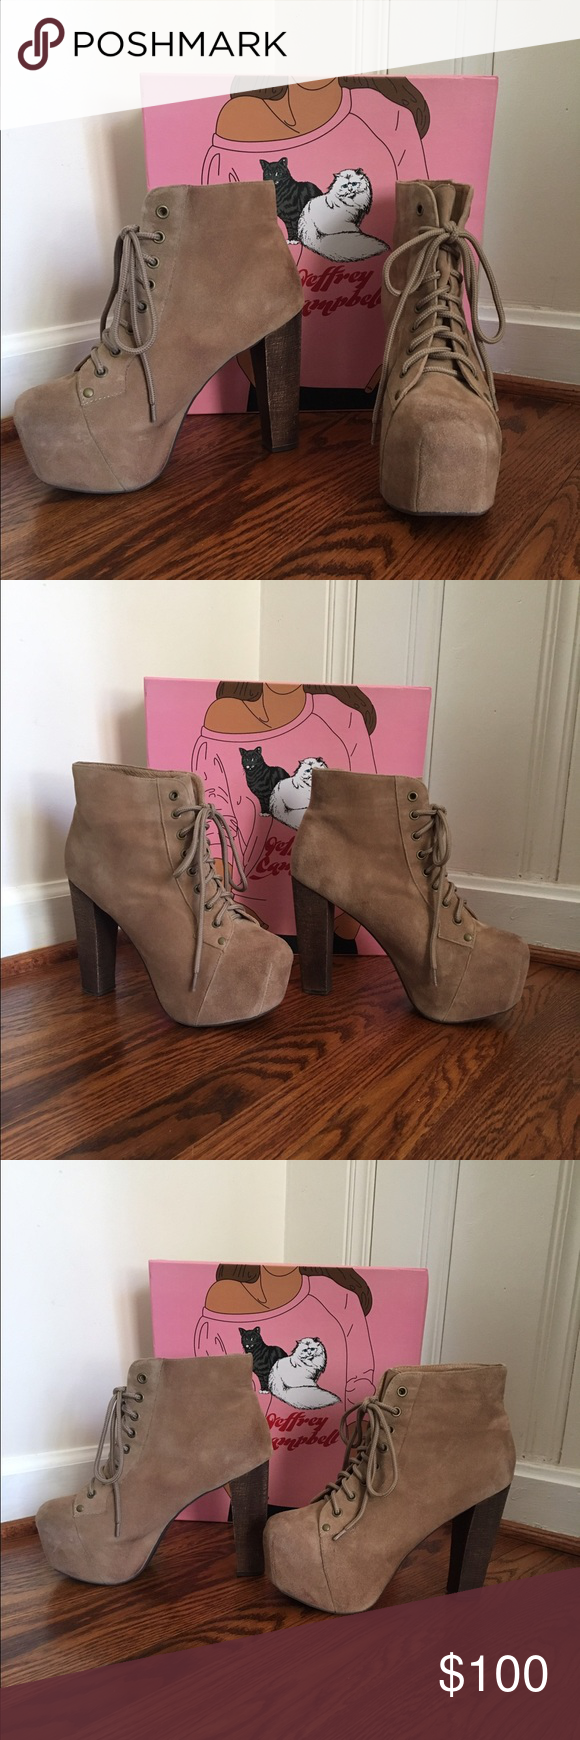 Jeffrey Campbell taupe suede Lita heels 8.5 Worn once. When I started taking the pictures I noticed that the back of the heel of the right shoe is slightly lighter than the left. It's not a scuff, look closely at the photo. Not noticeable unless you're looking for it. Jeffrey Campbell Shoes Platforms